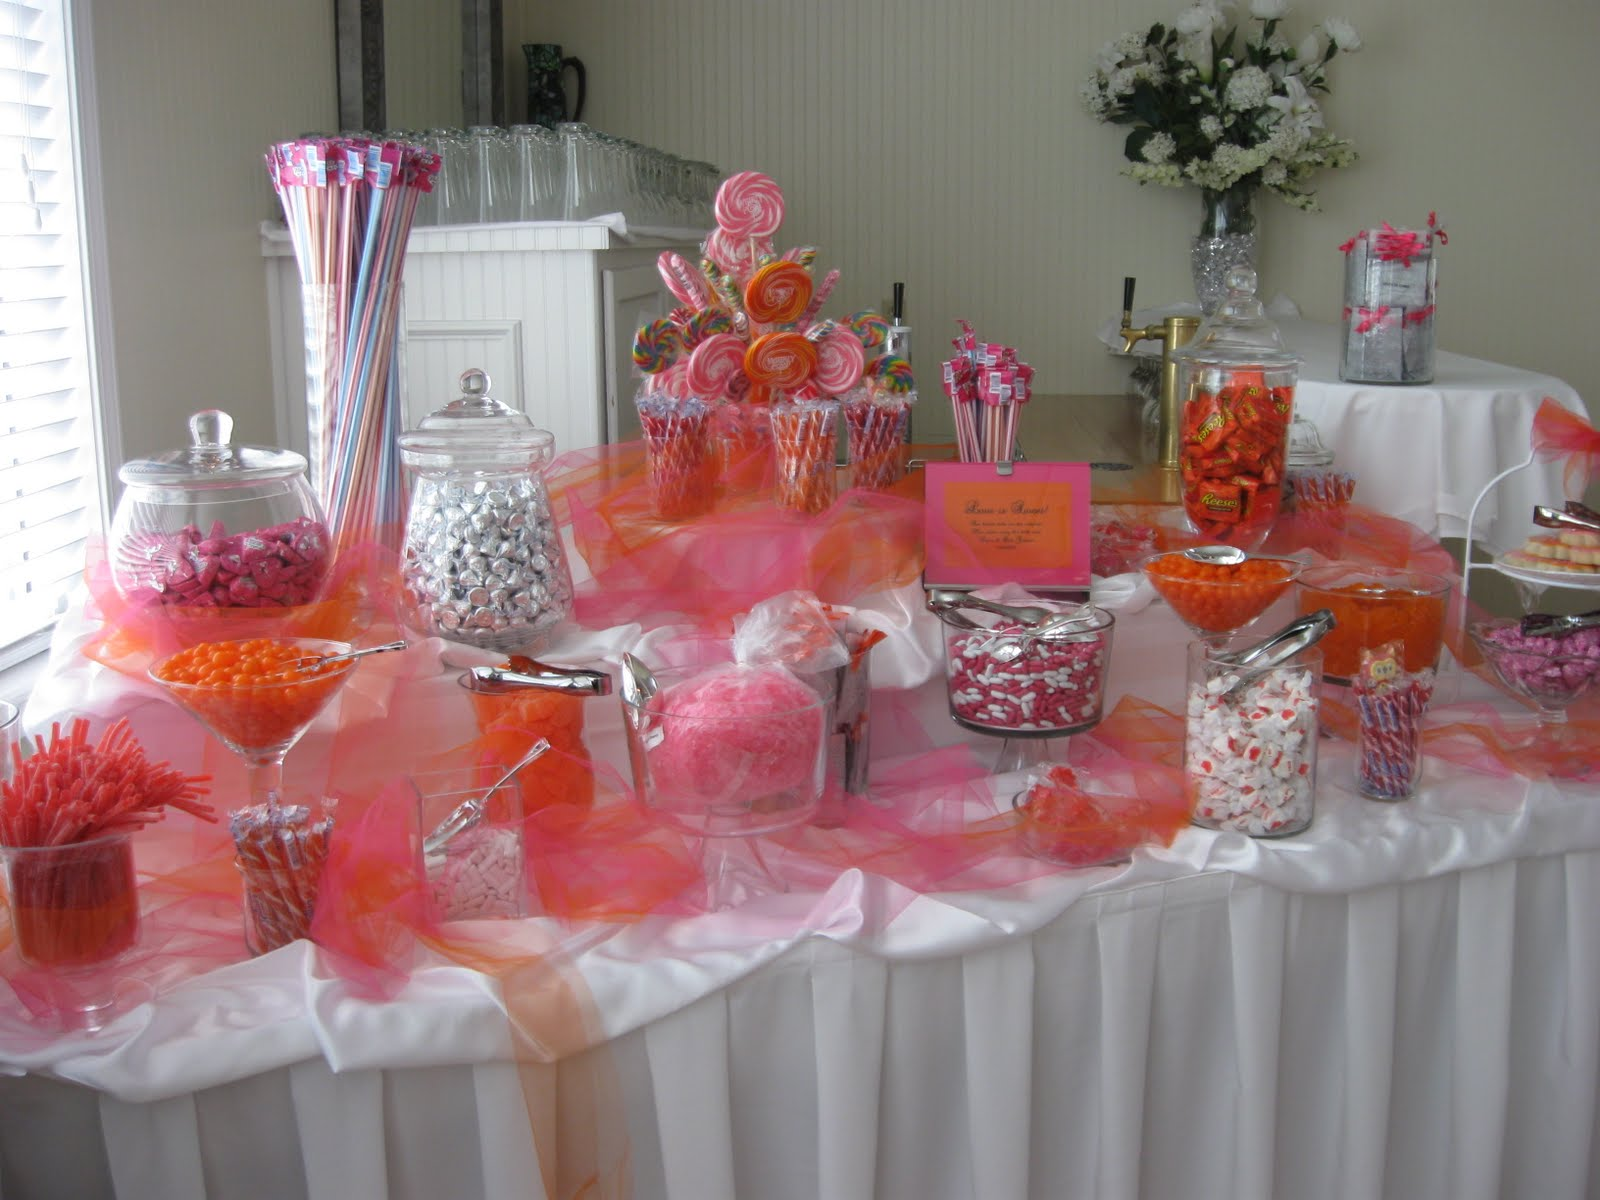 Dalal 39 s blog candy bar at wedding reception for Candy bar for weddings receptions